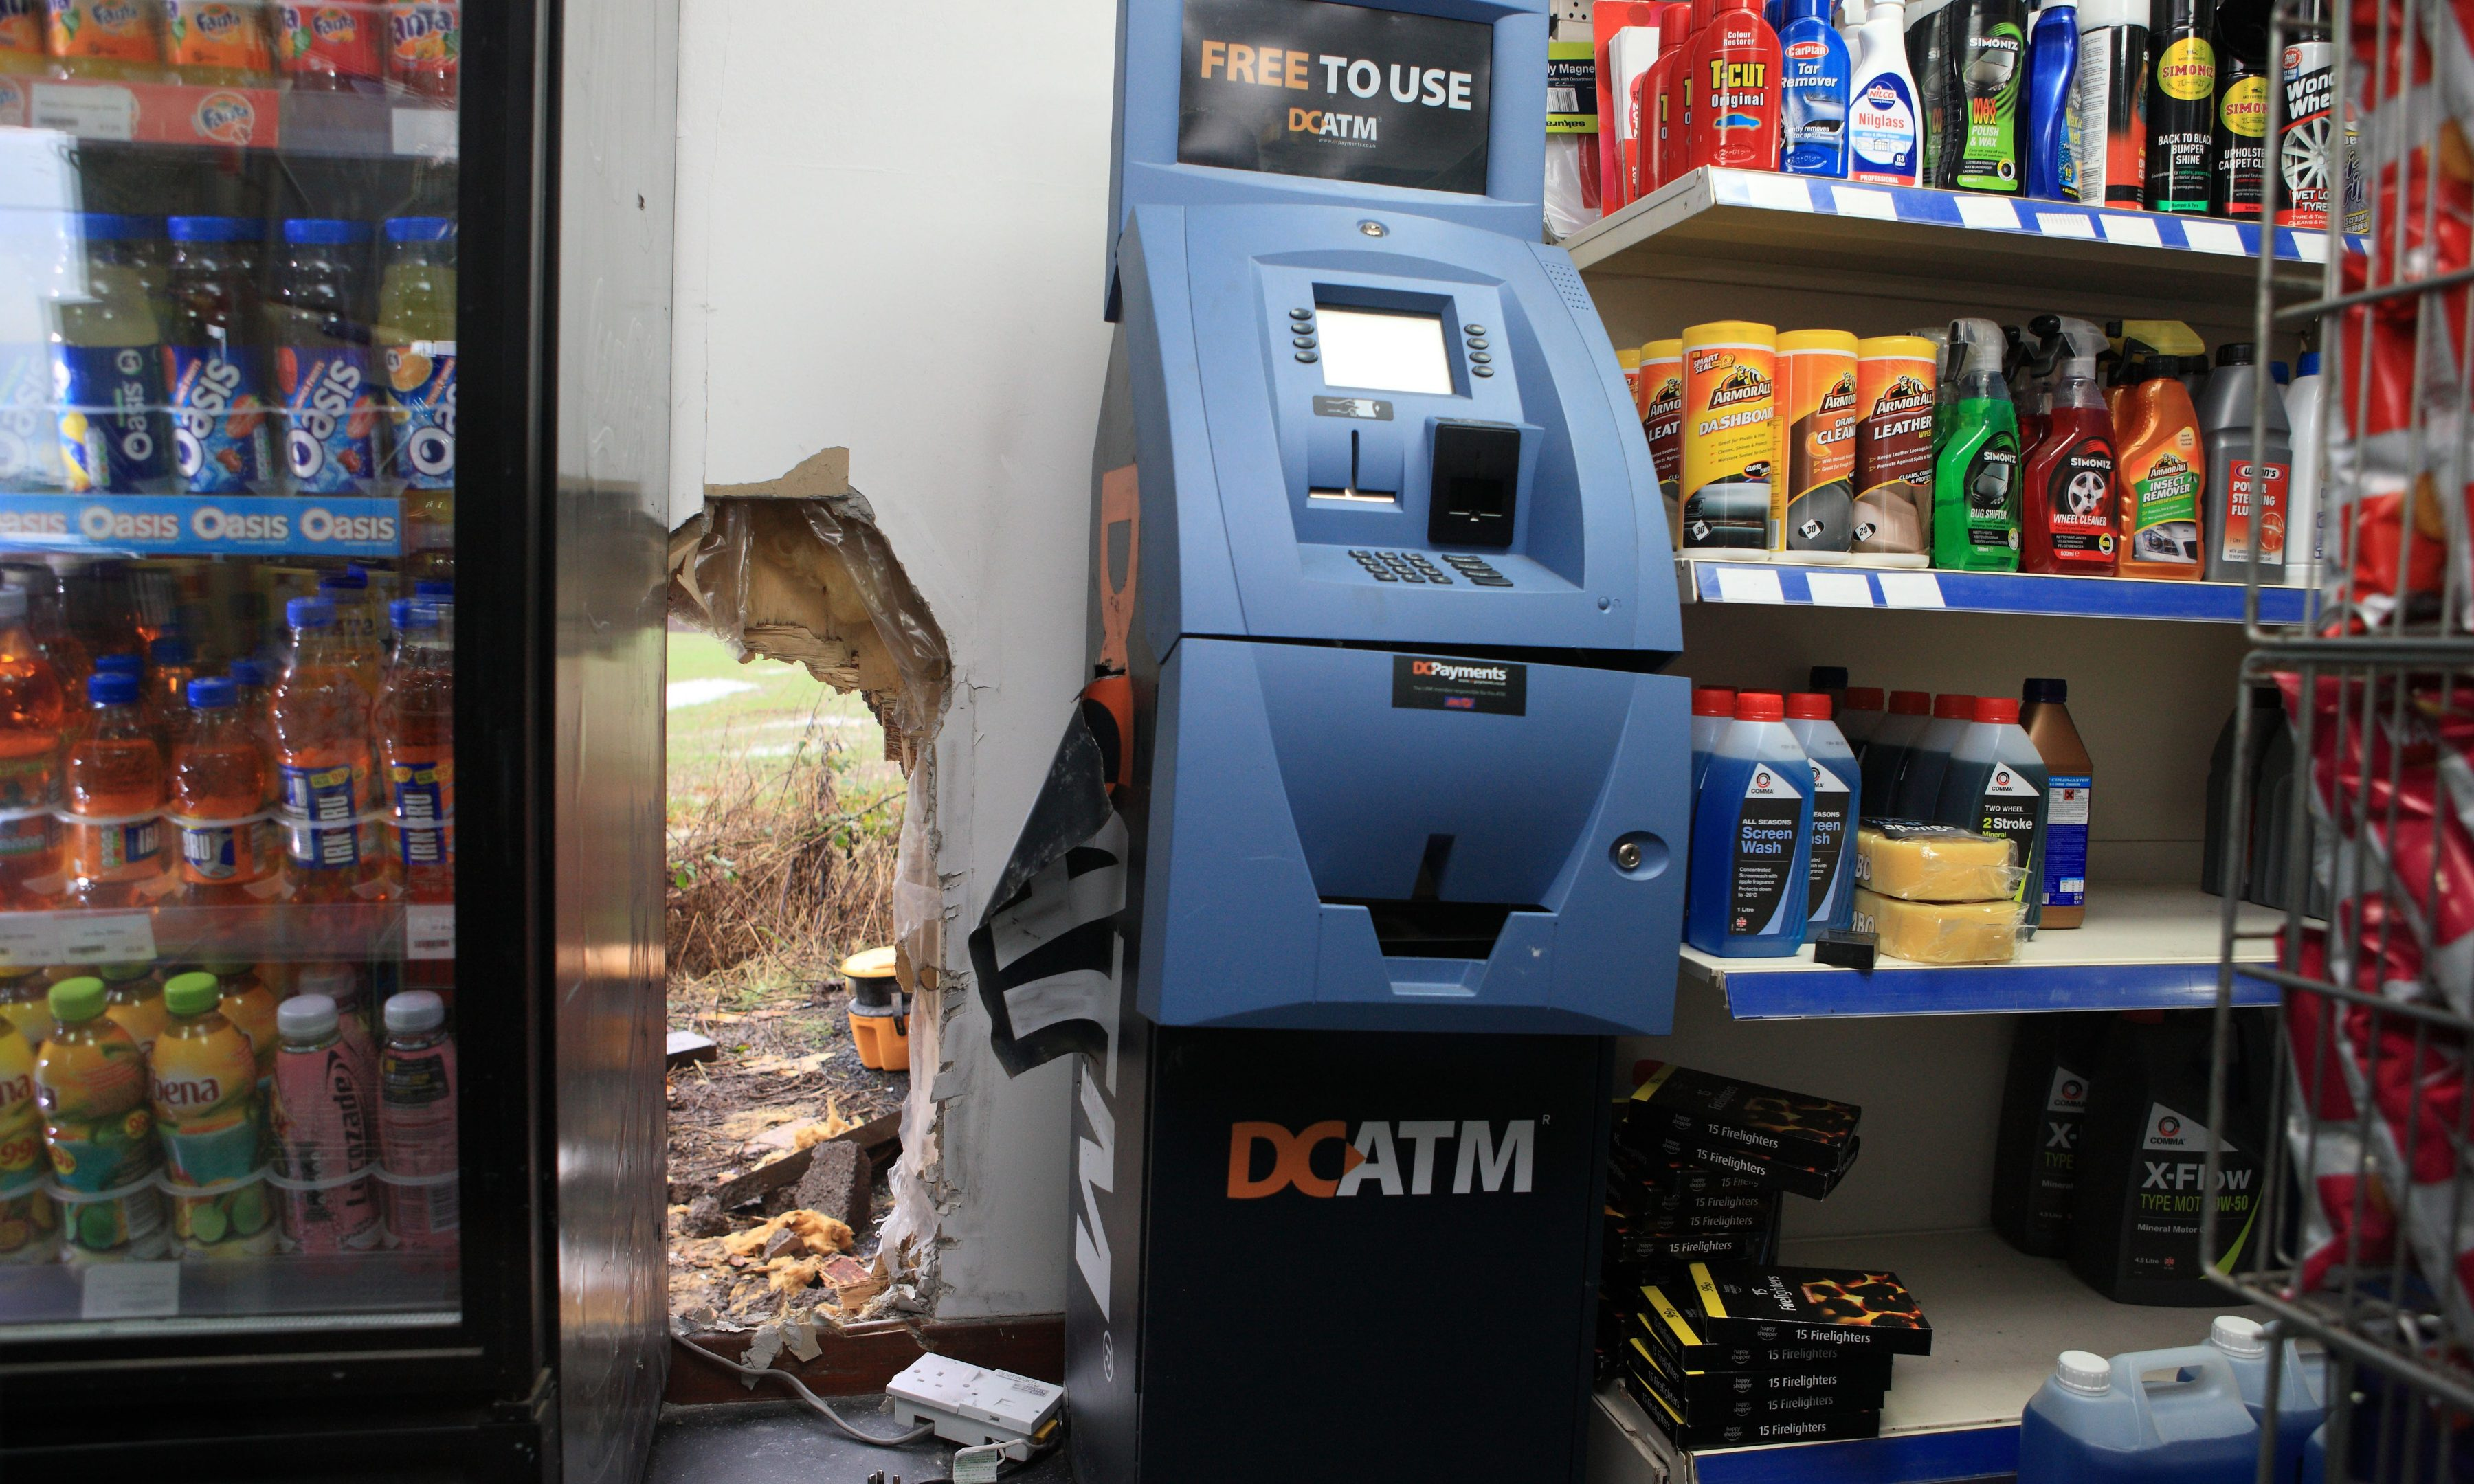 Damage to the Jet garage premises near Almondbank, aftre the ATM was targeted by thieves in January.